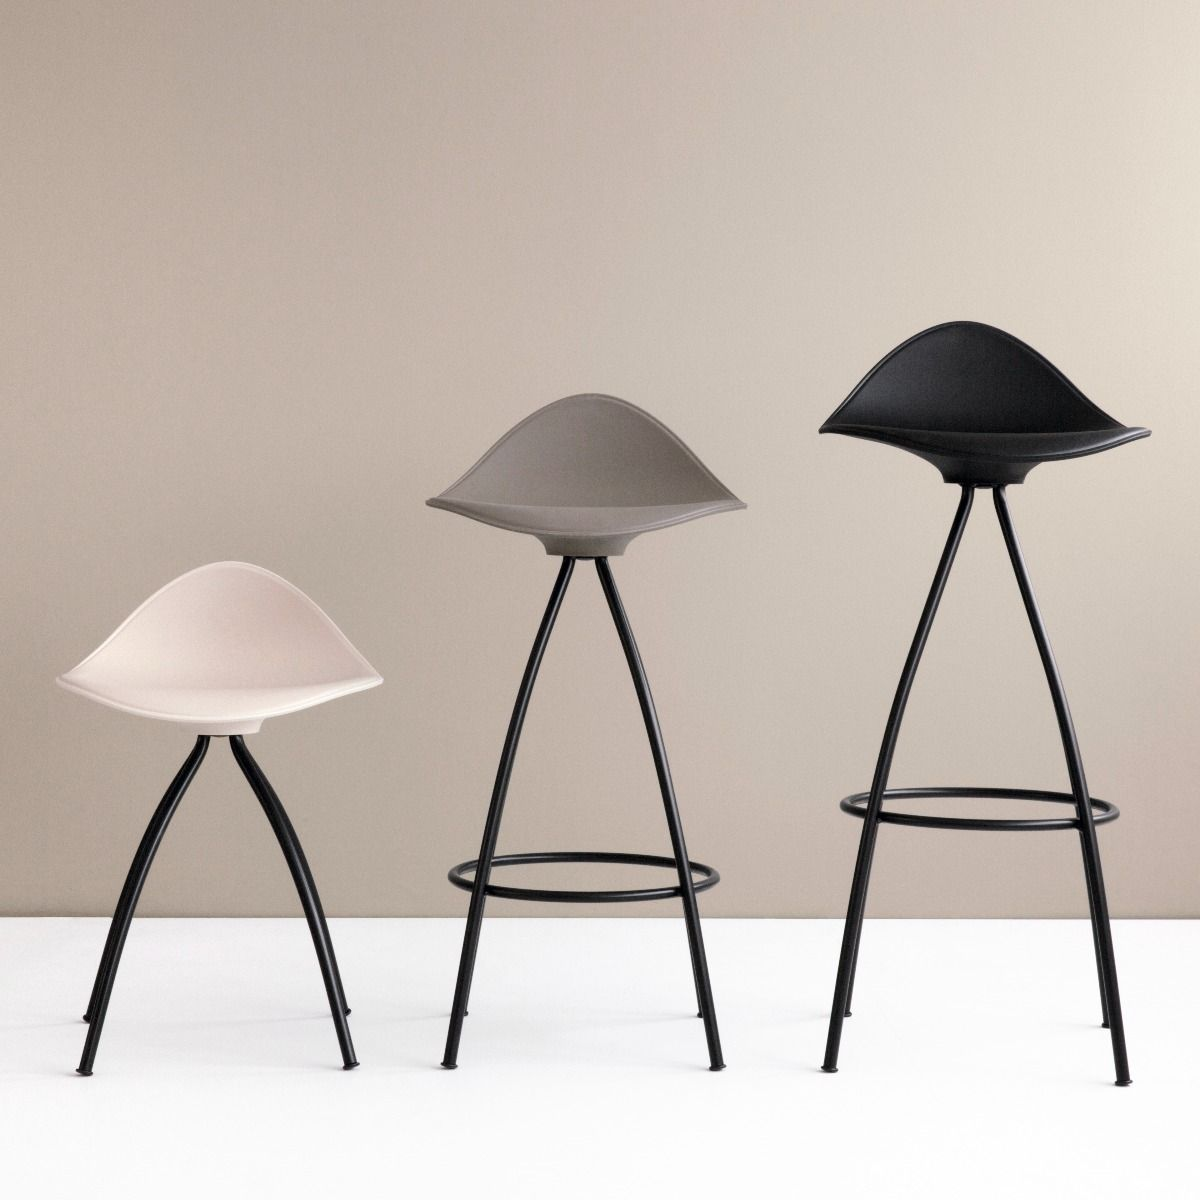 STUA Onda bar stool with black legs, showing all three heights